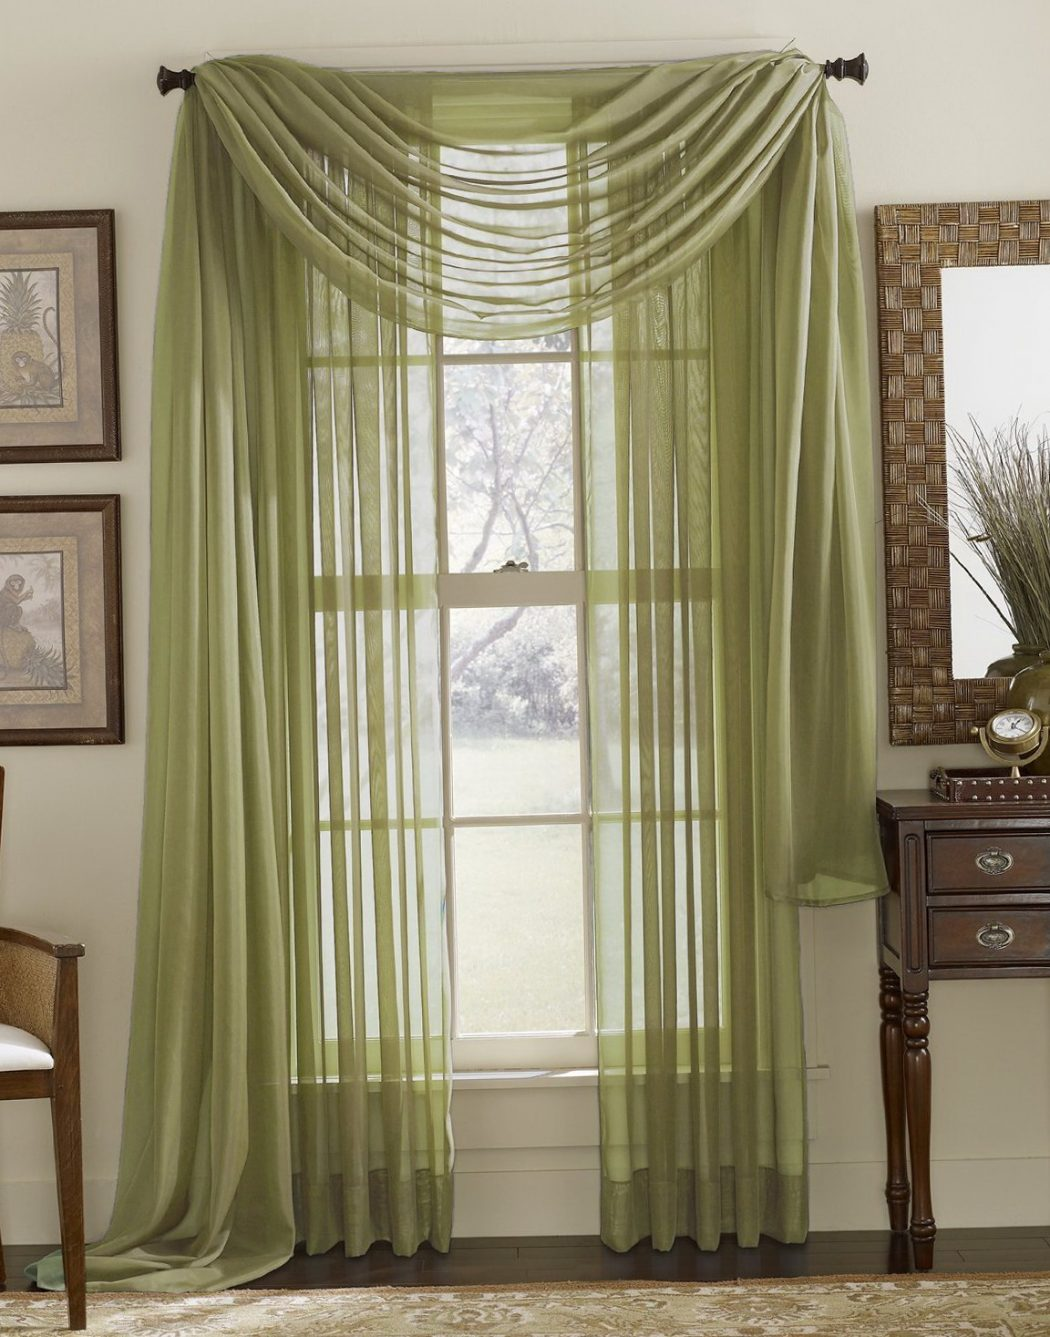 Lovely-Green-Sheer-Curtains-97-In-with-Green-Sheer-Curtains 20+ Hottest Curtain Designs for 2018